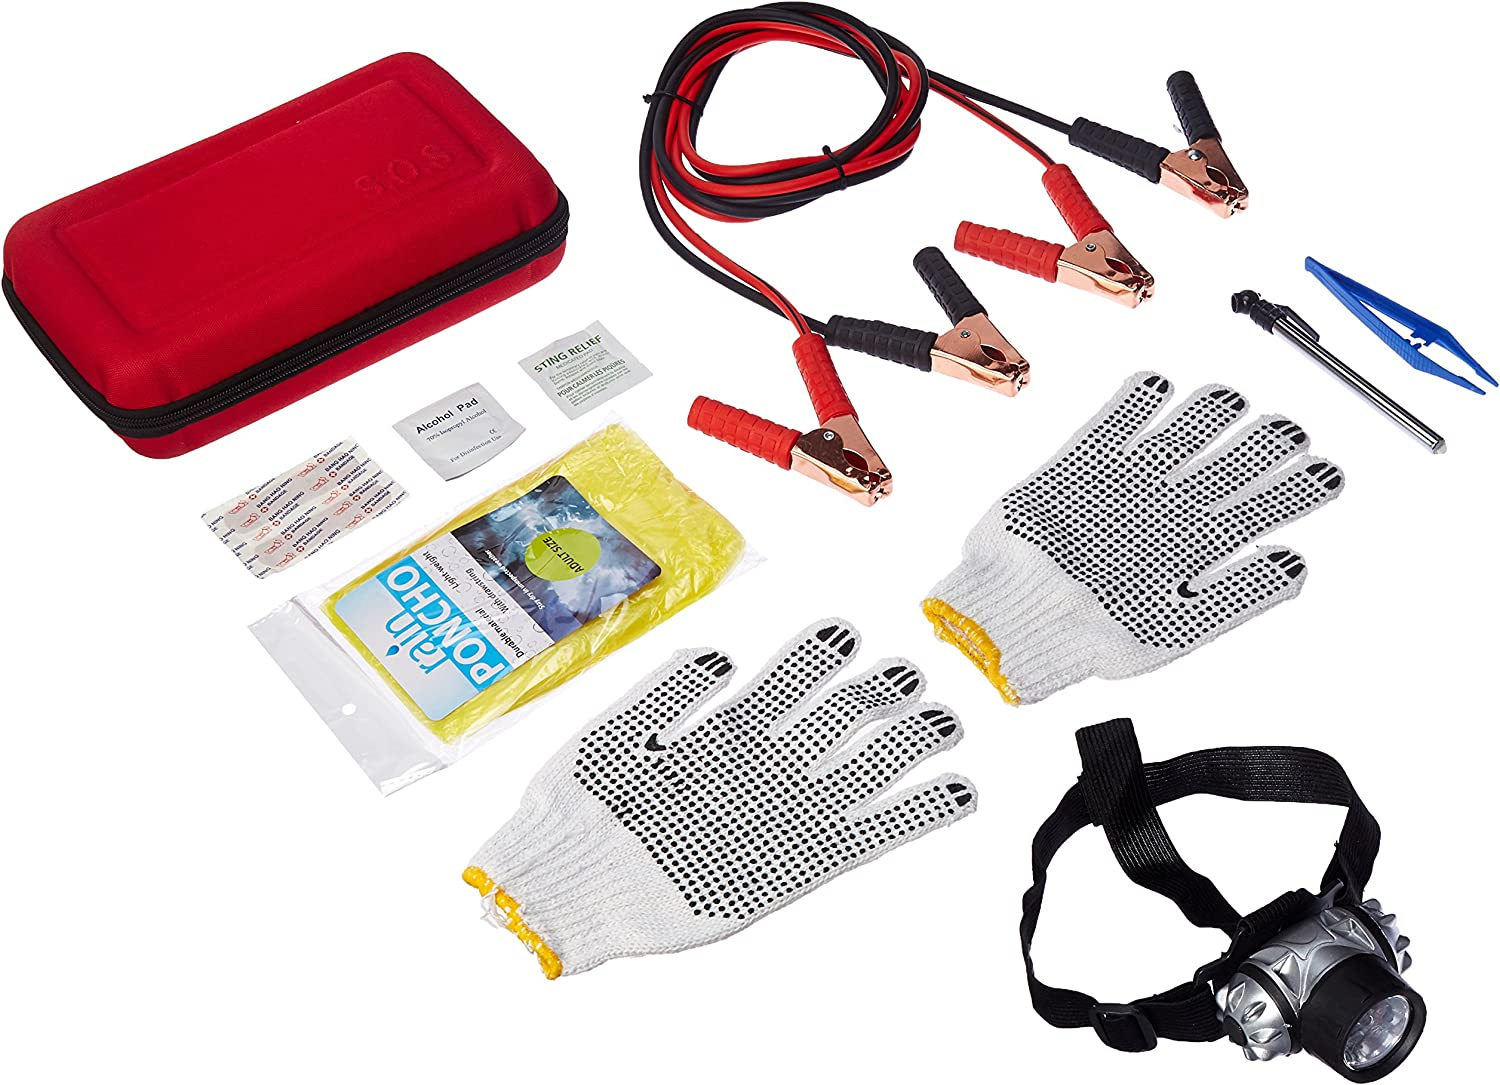 First Aid Kit with Jumper Cables Tow Rope,Triangle QLOUNI 12pcs Car Emergency Kit Rain Coat Flash Light Tire Pressure Gauge Safety Vest More Multifunctional Roadside Assistance Tools